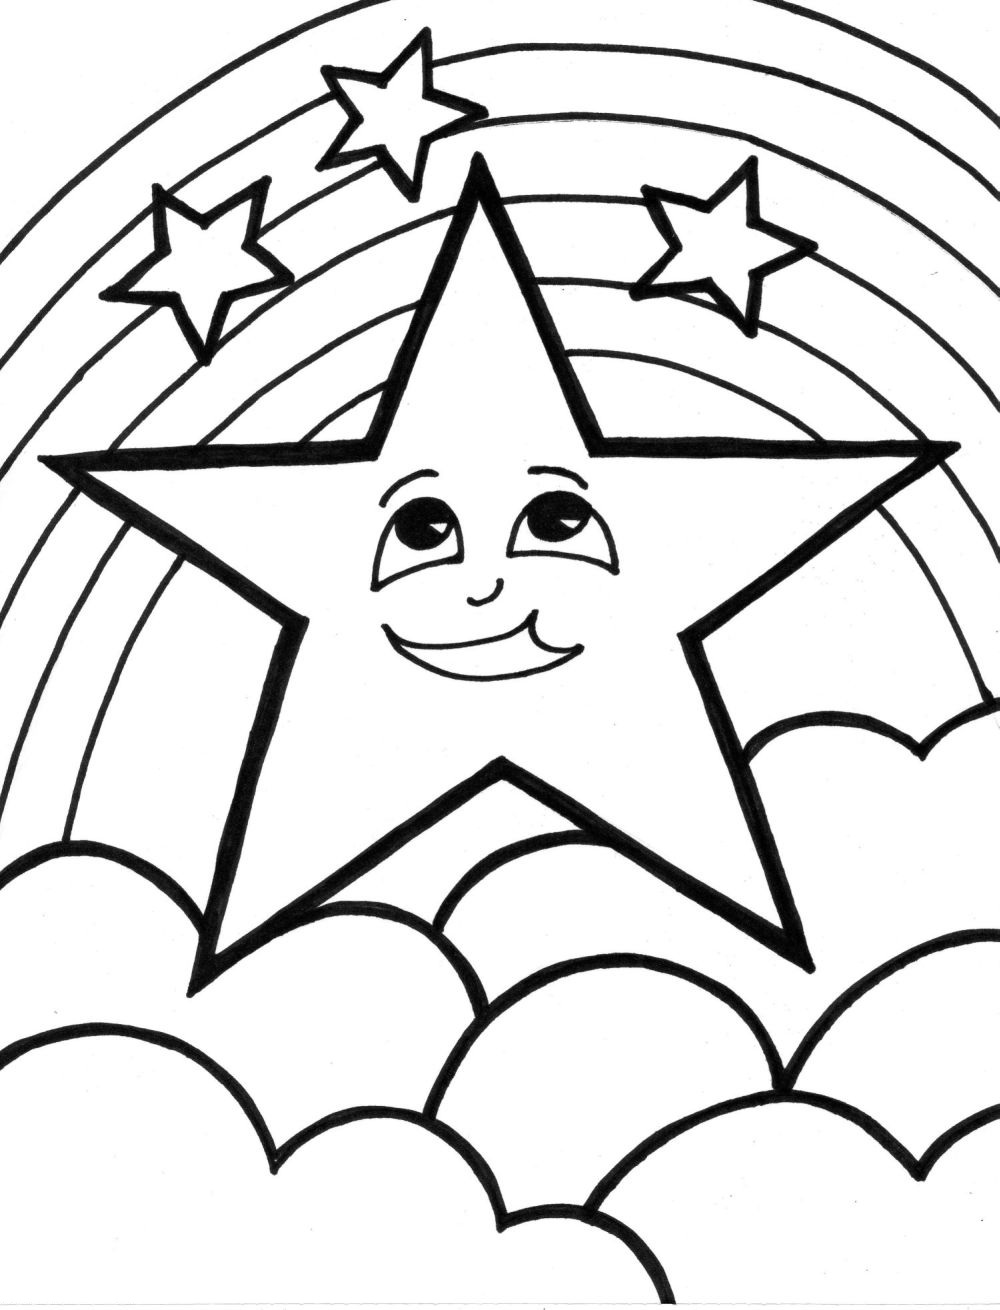 coloring star images best shooting star clipart 13022 clipartioncom star images coloring